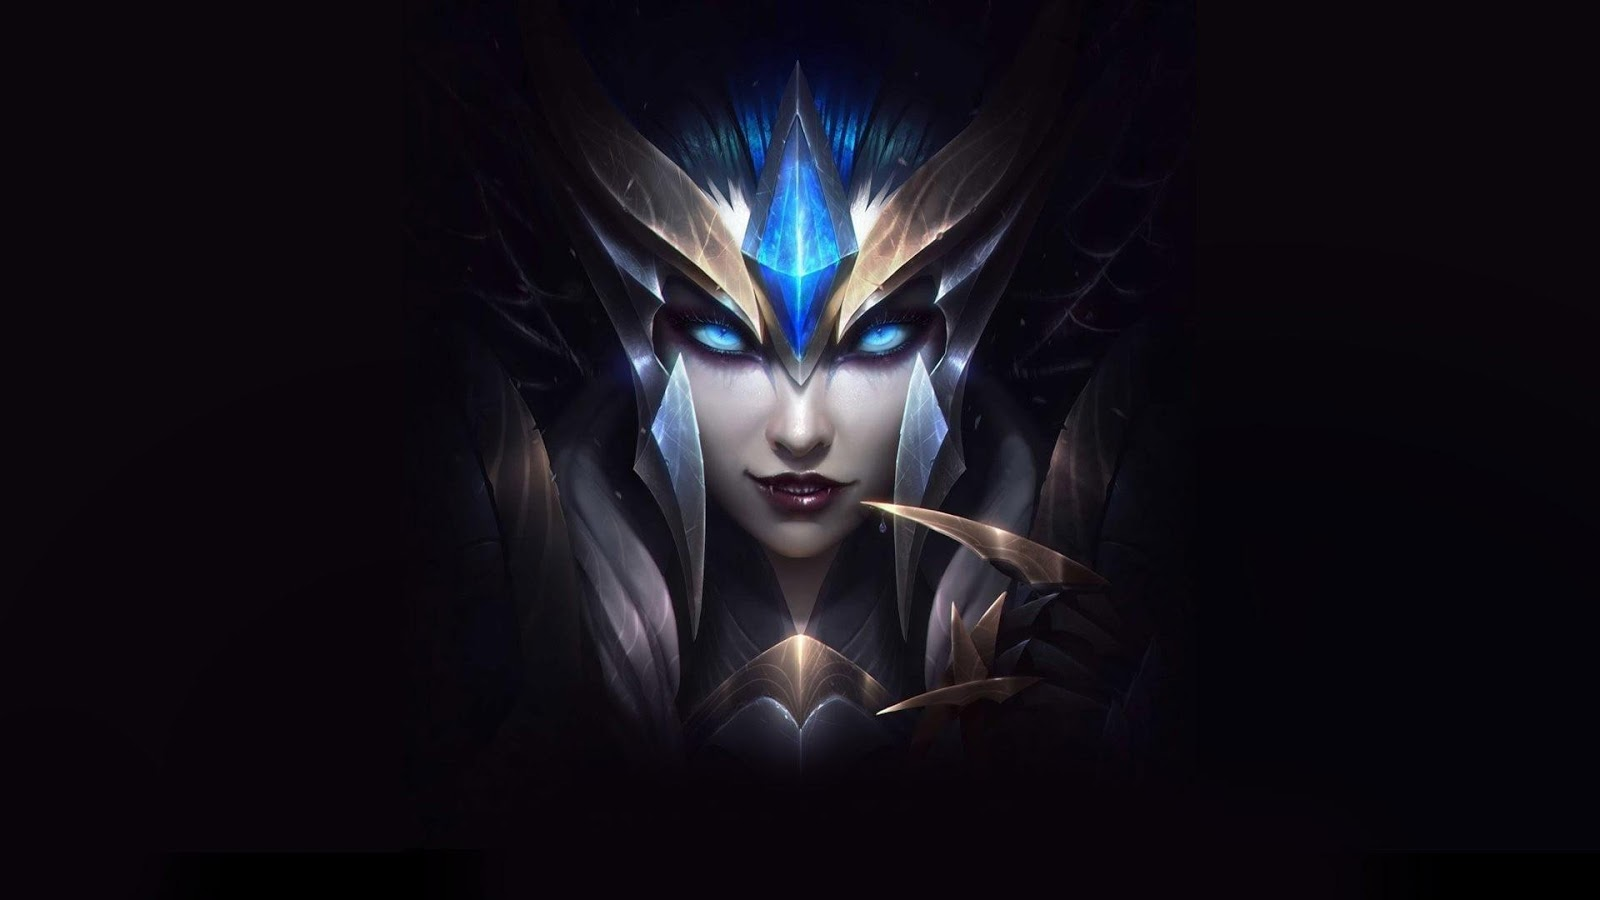 Wallpaper Irithel Silver Cyclone Skin Mobile Legends HD for PC